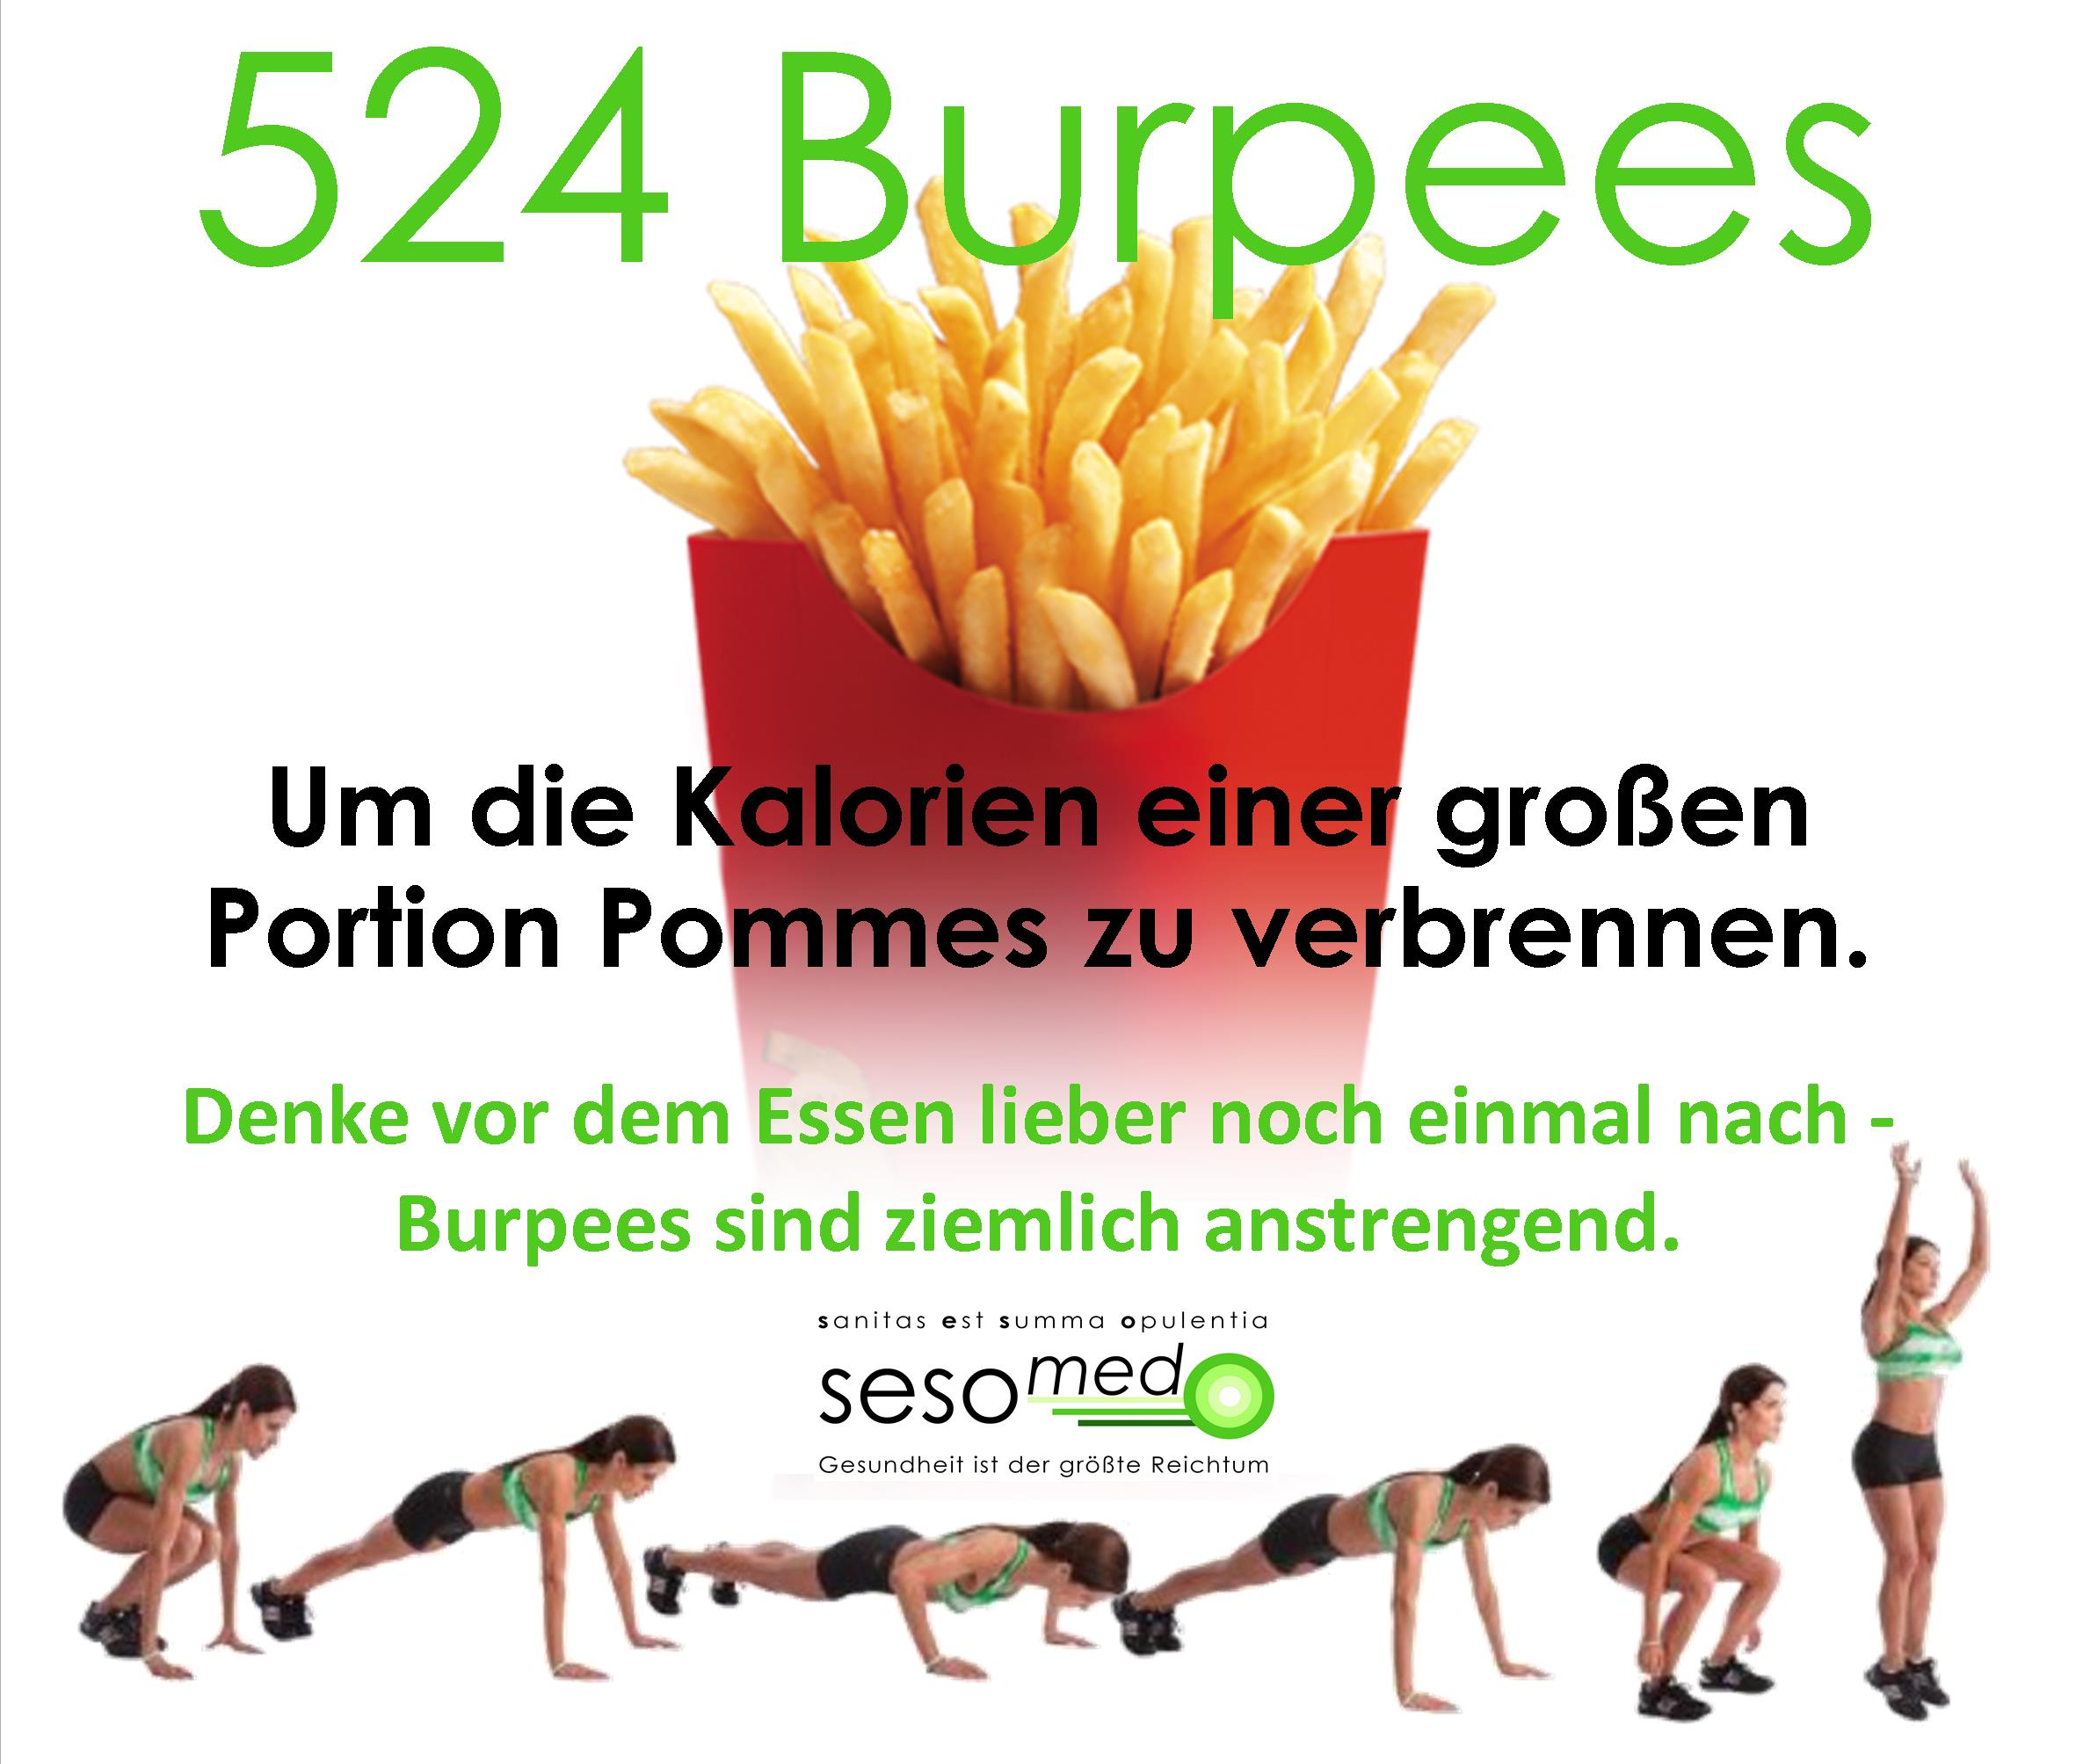 Burpees vs. Pommes